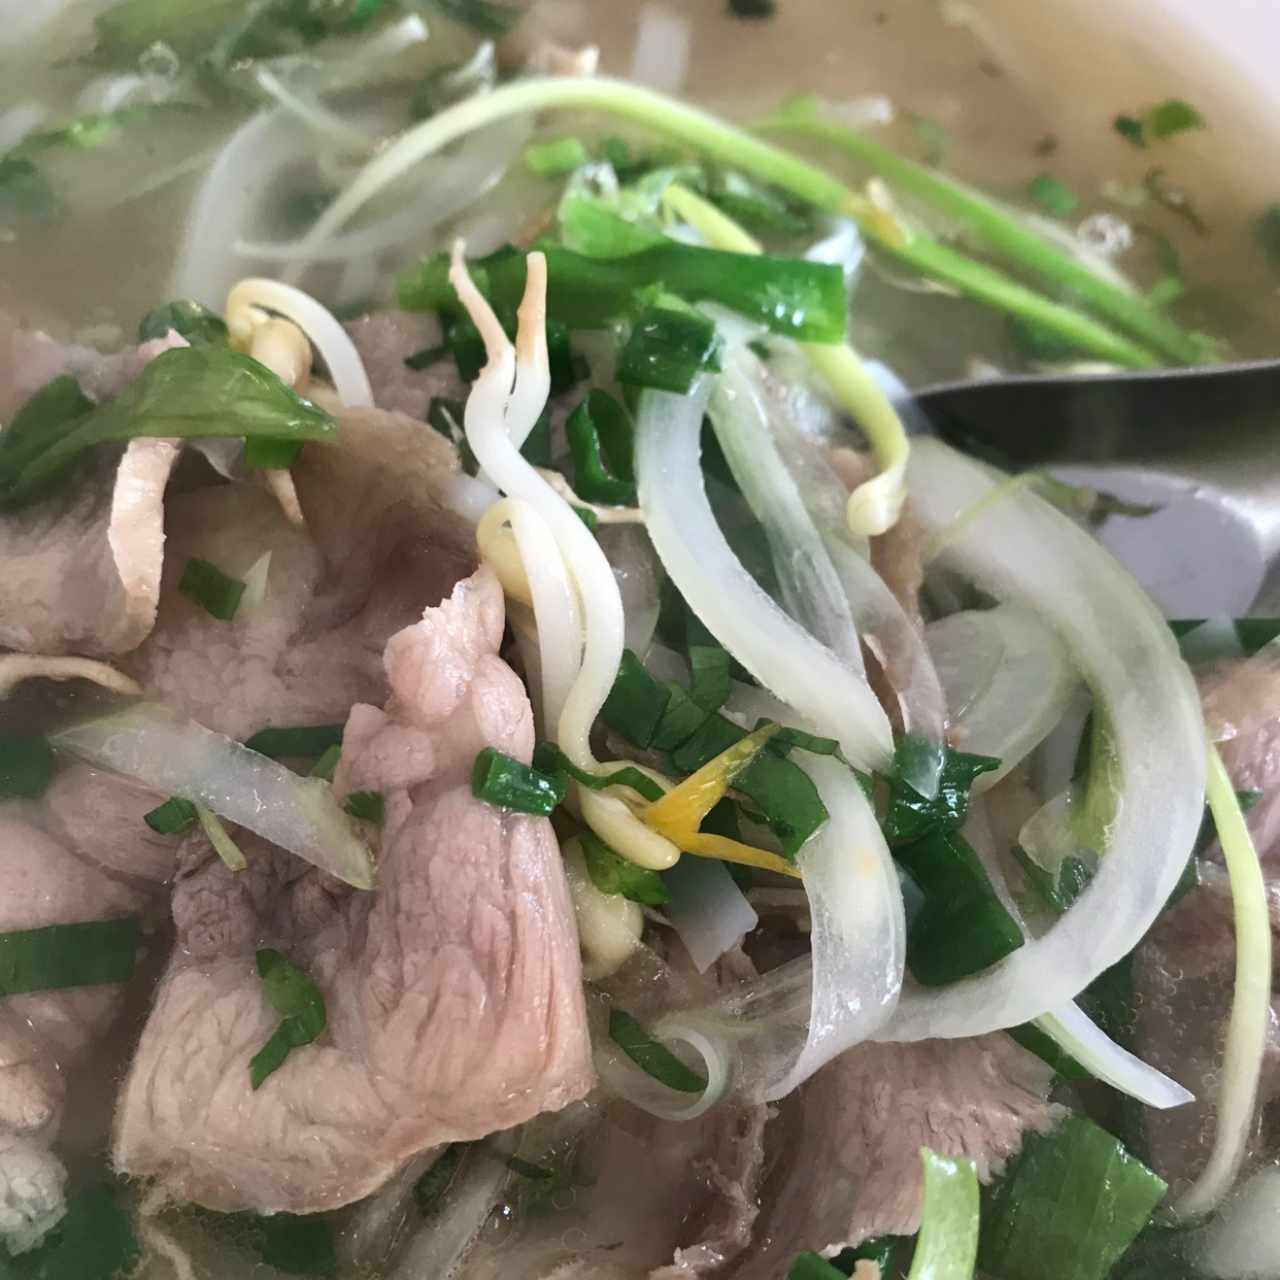 Pho de Res medio cruda